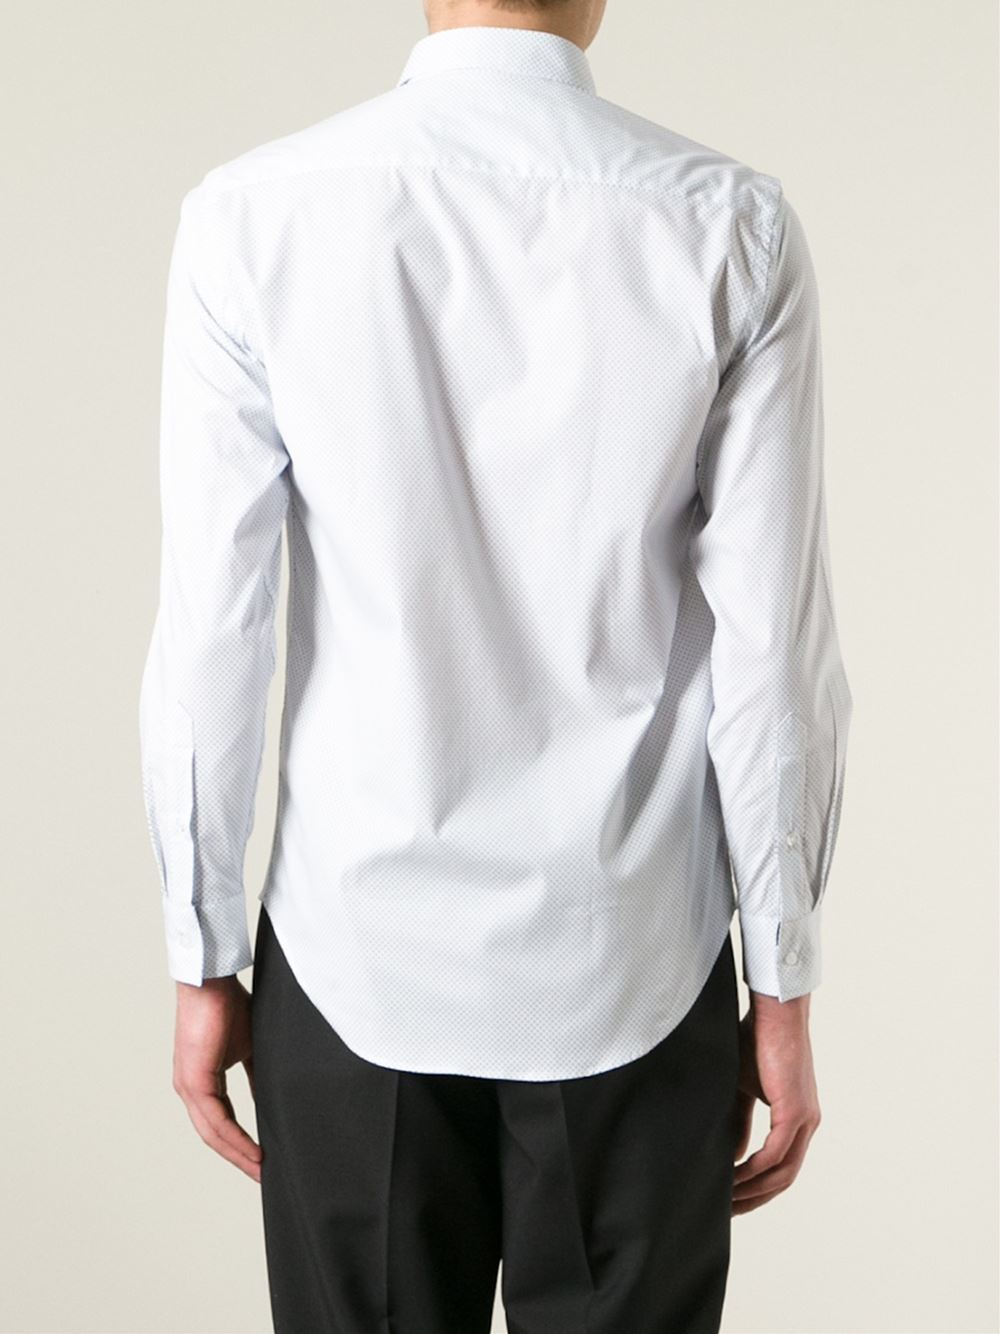 Msgm button down polka dot shirt in white for men lyst for Button down polka dot shirt